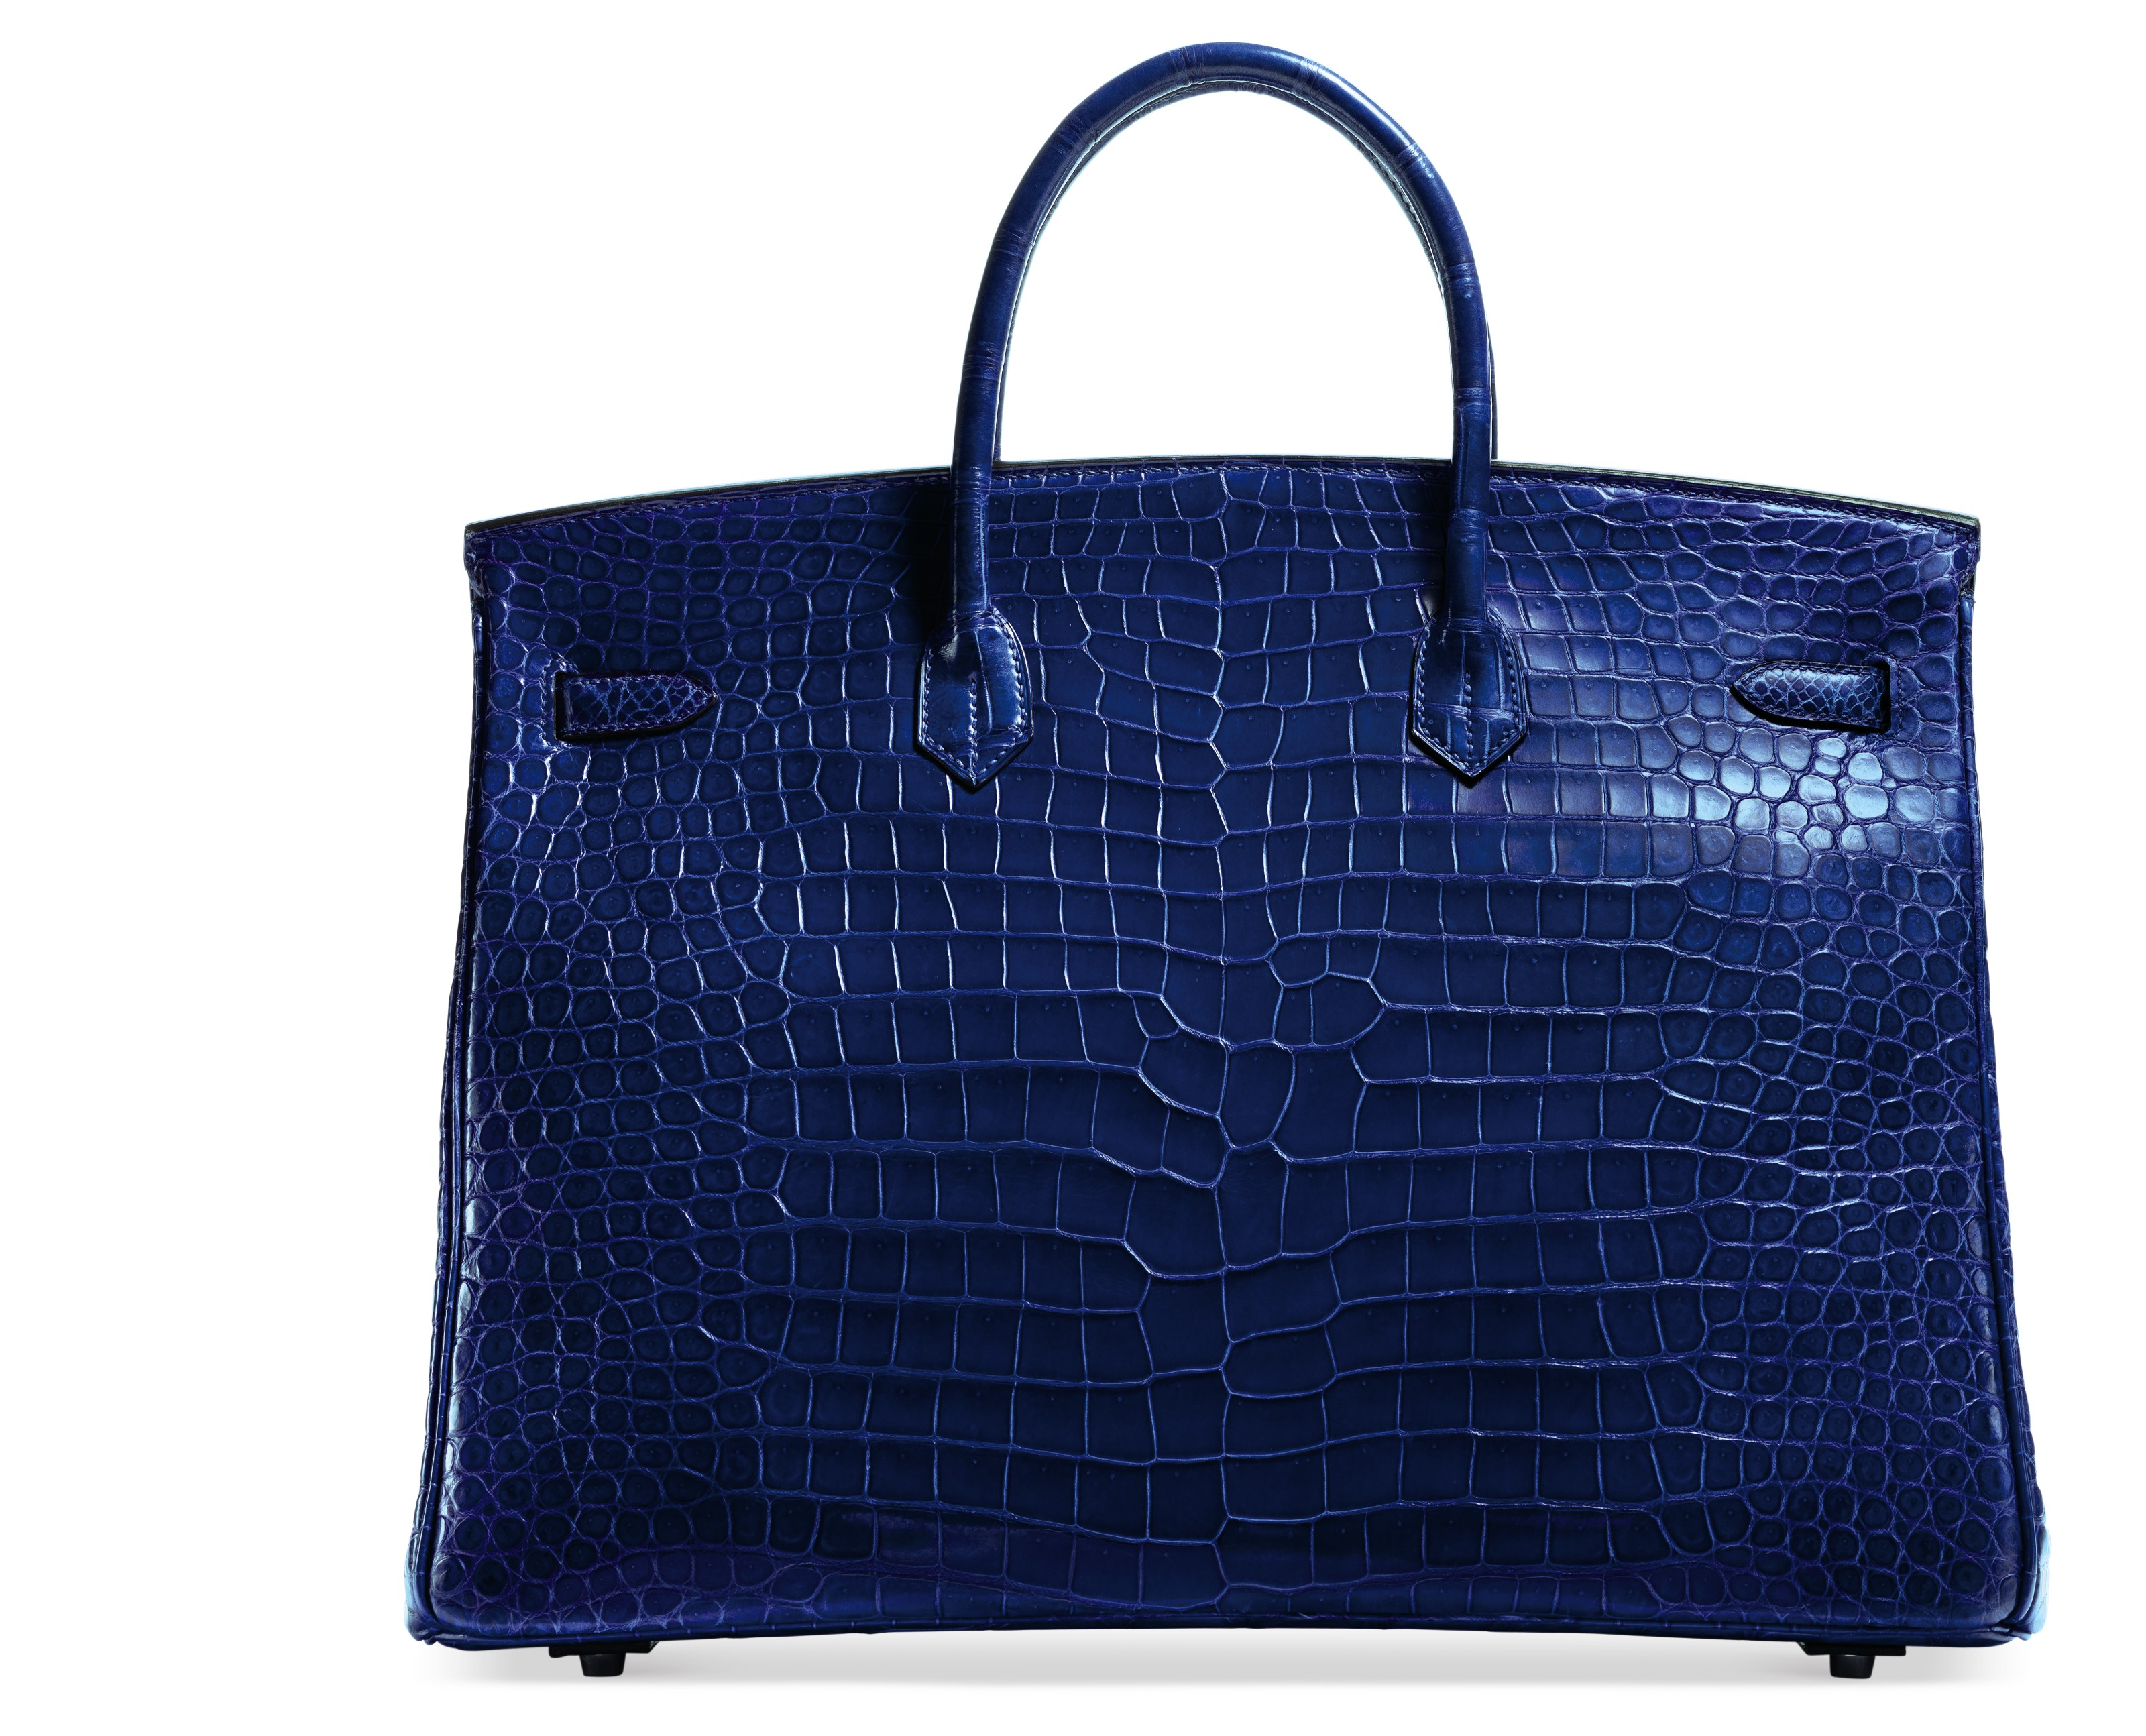 A BLEU ÉLECTRIQUE POROSUS CROCODILE BIRKIN 40 WITH PALLADIUM HARDWARE